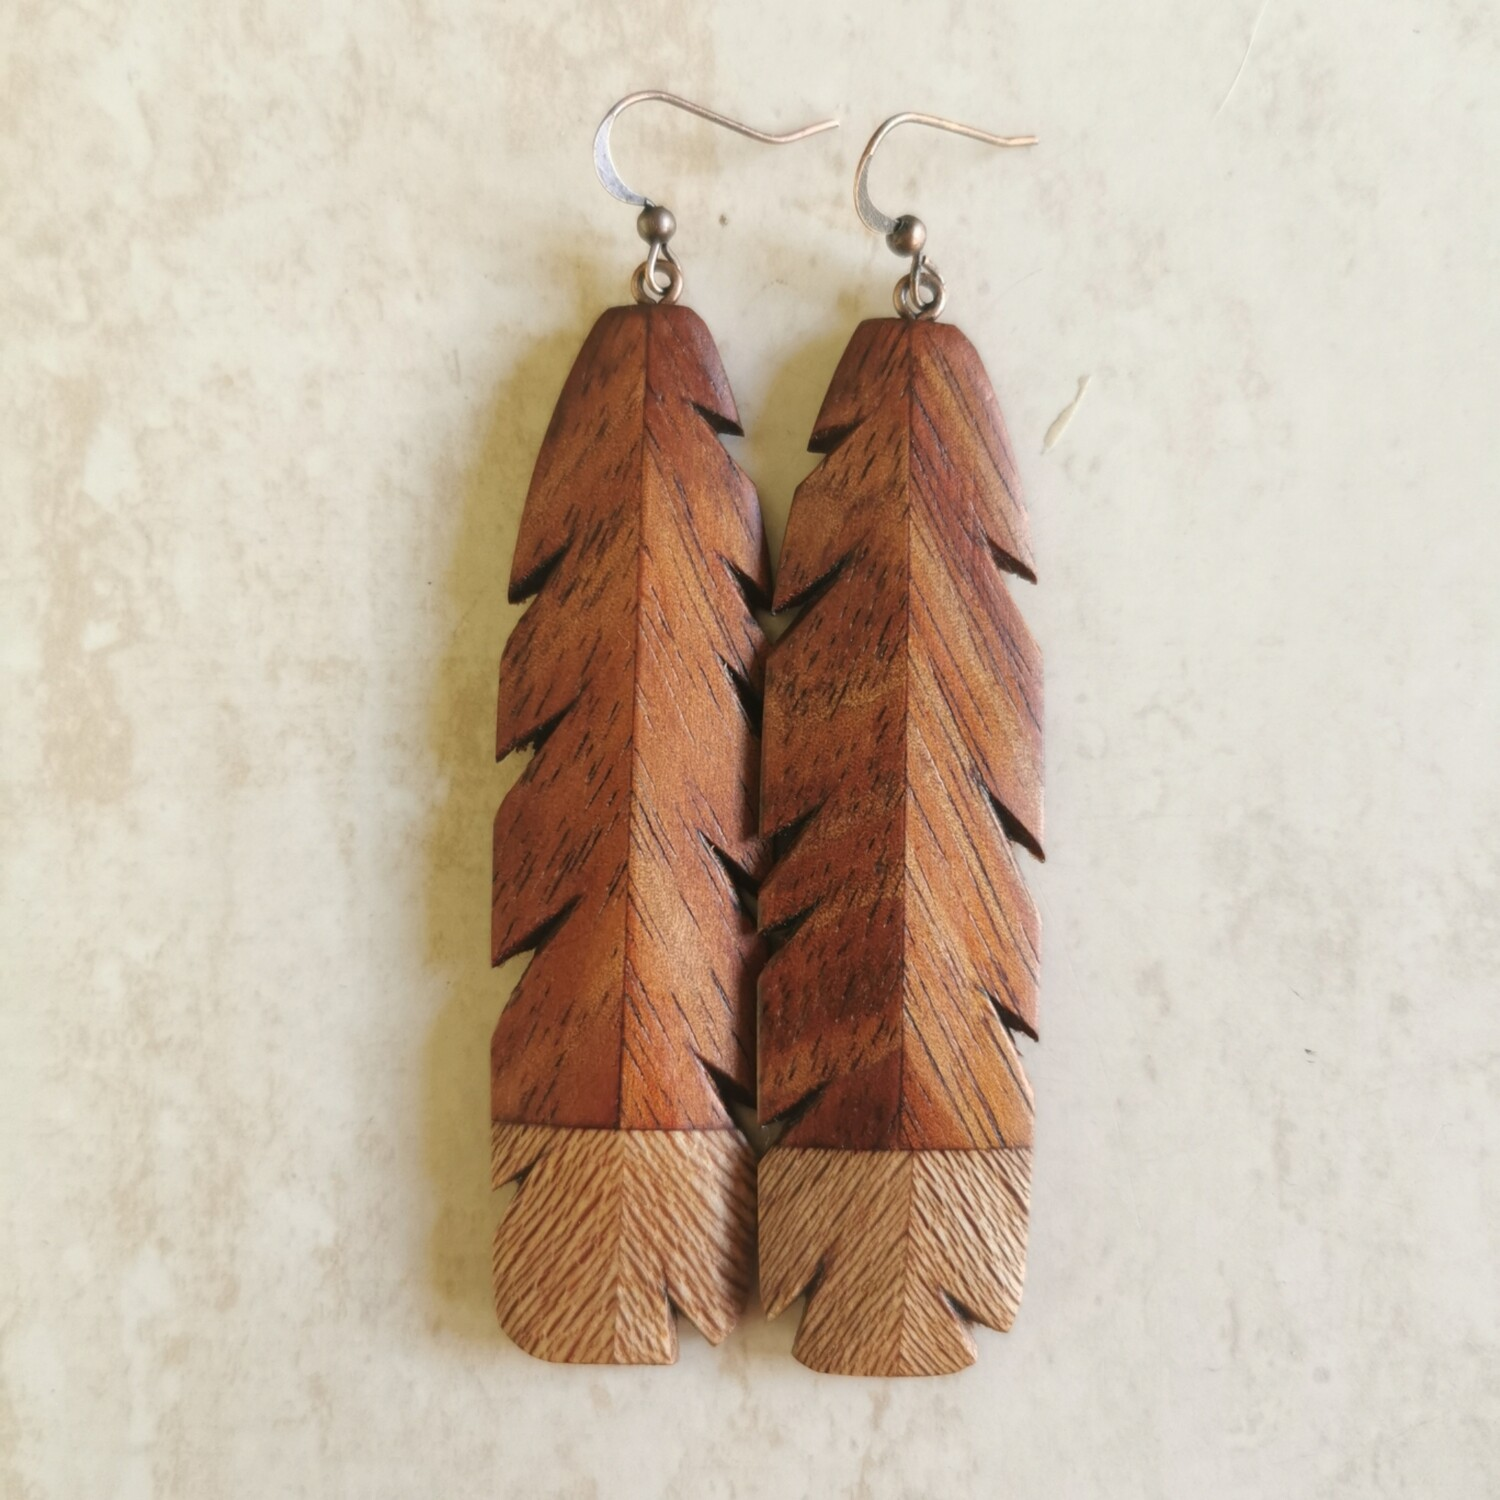 HUIA RAME - Hand Carved Wooden Earrings